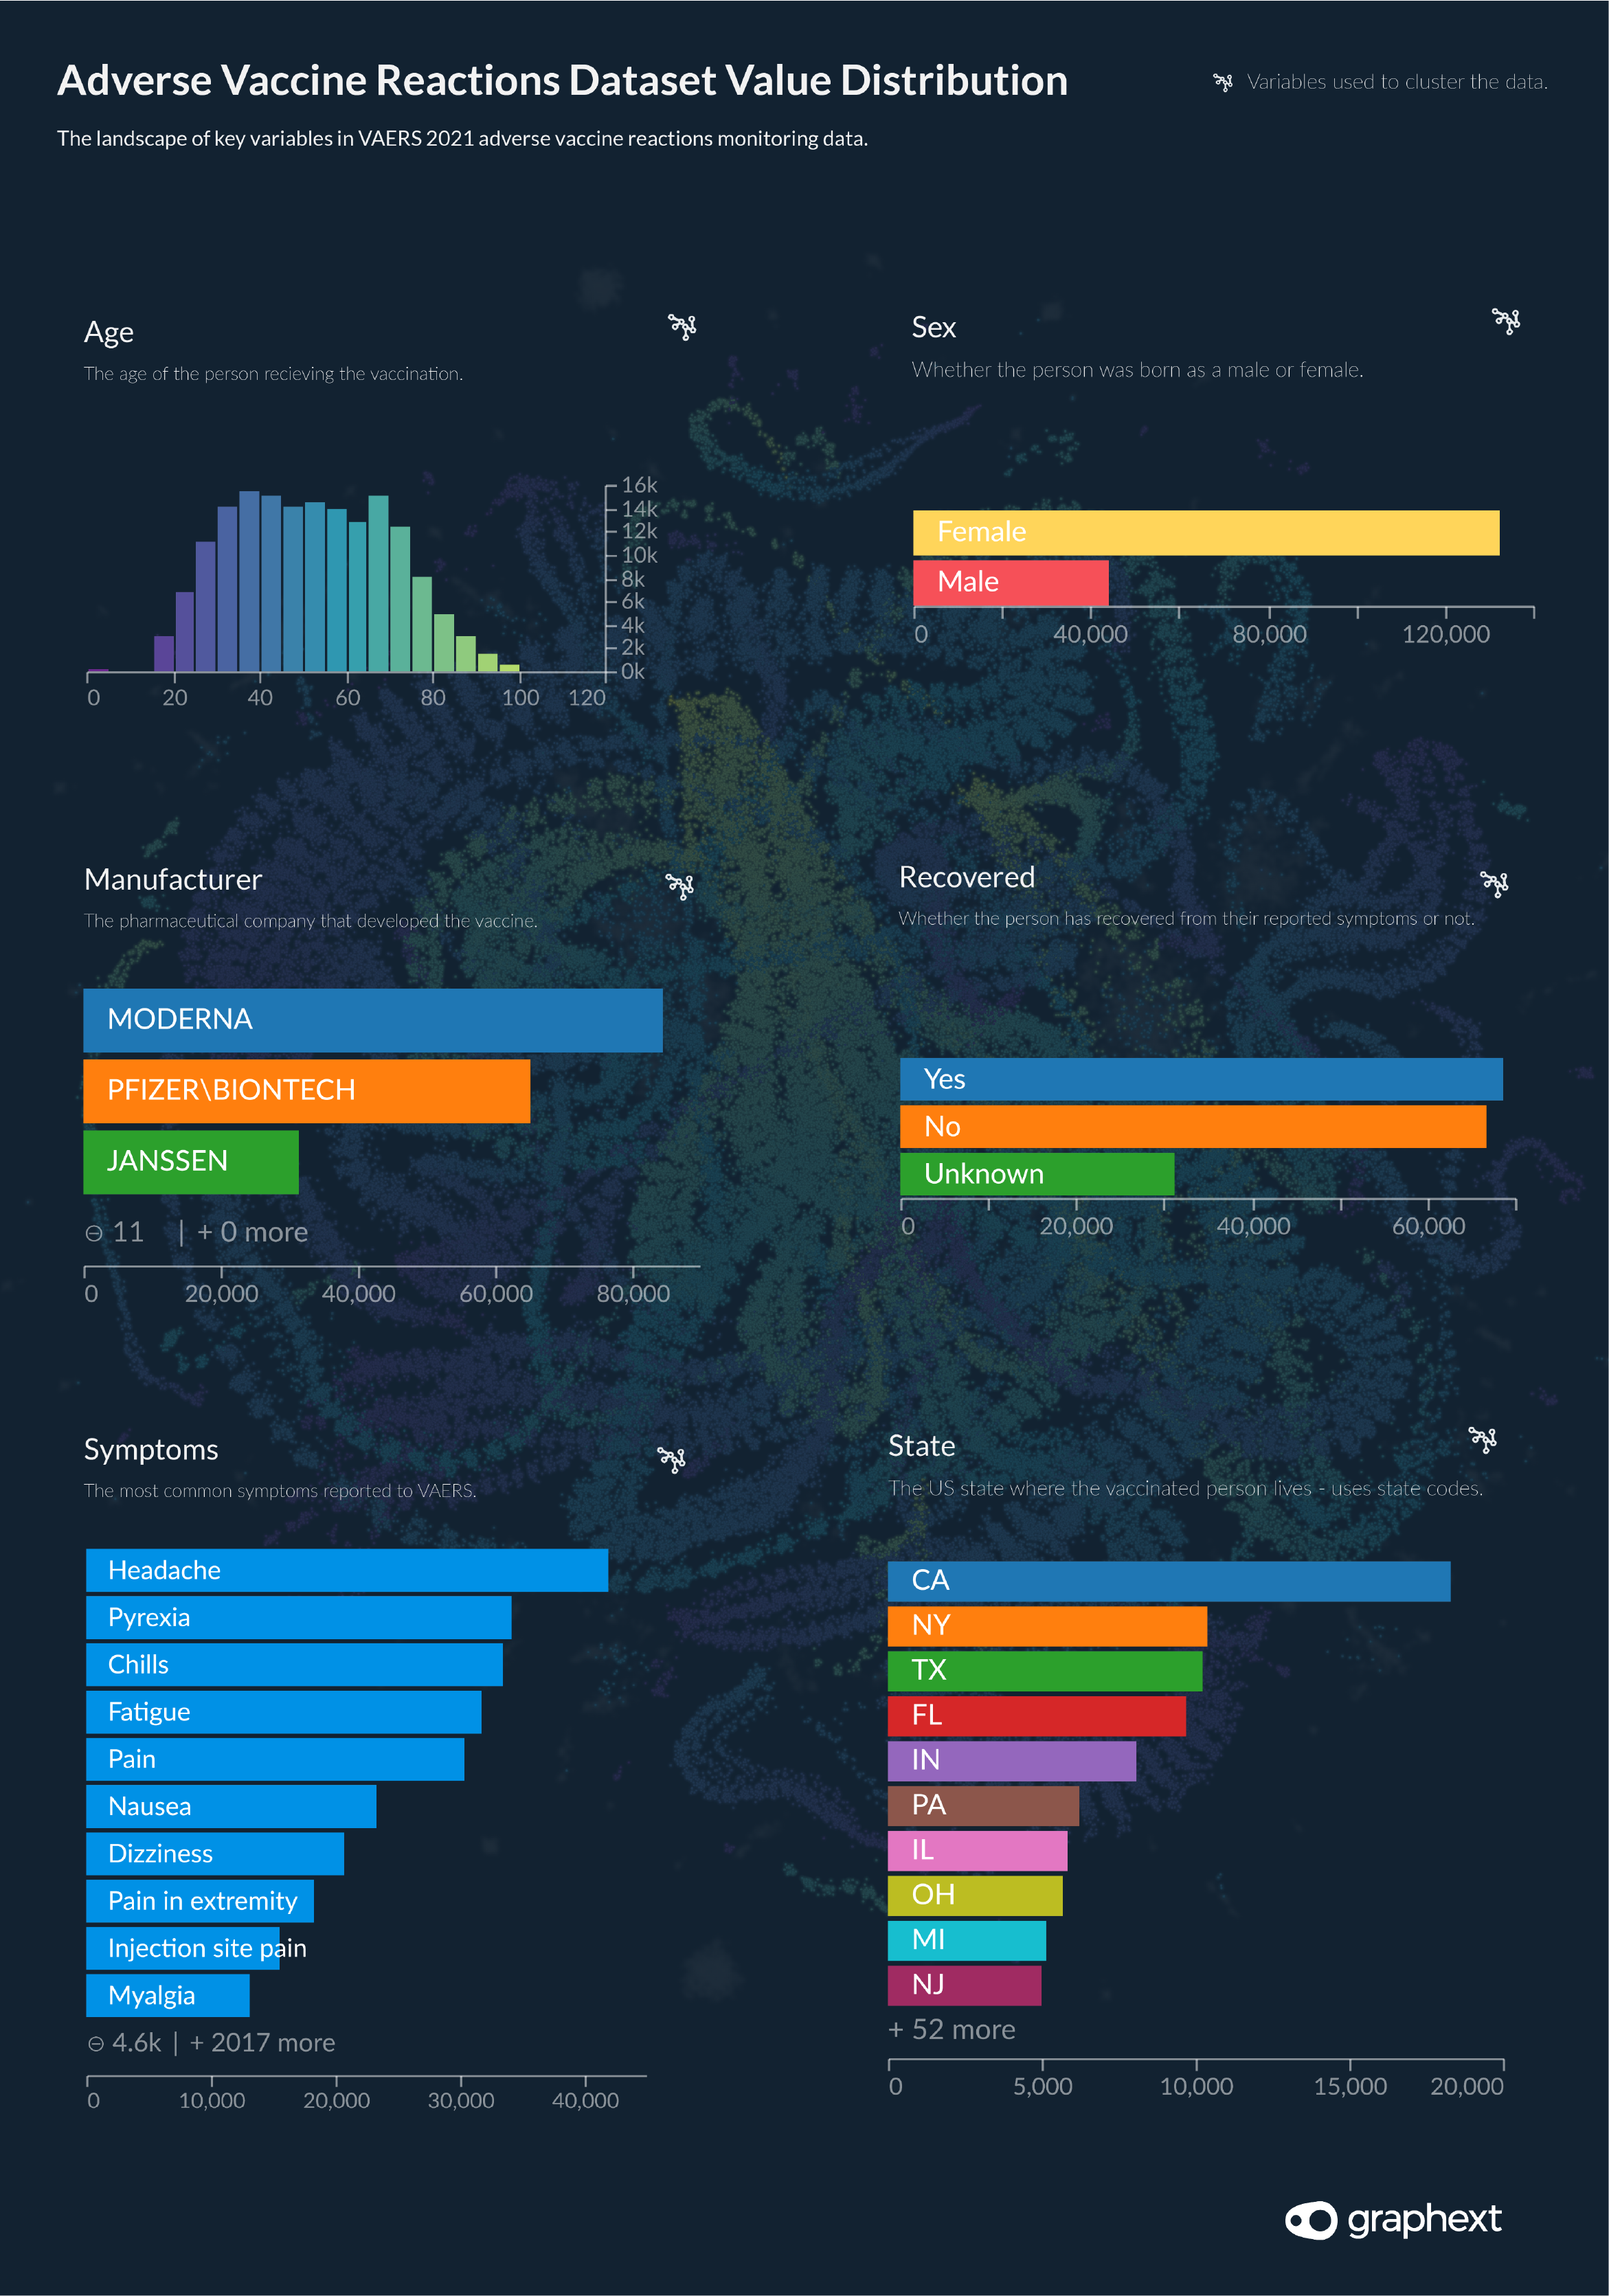 Data visualisations showing the distribution of values in the VAERS 2021 wave data.